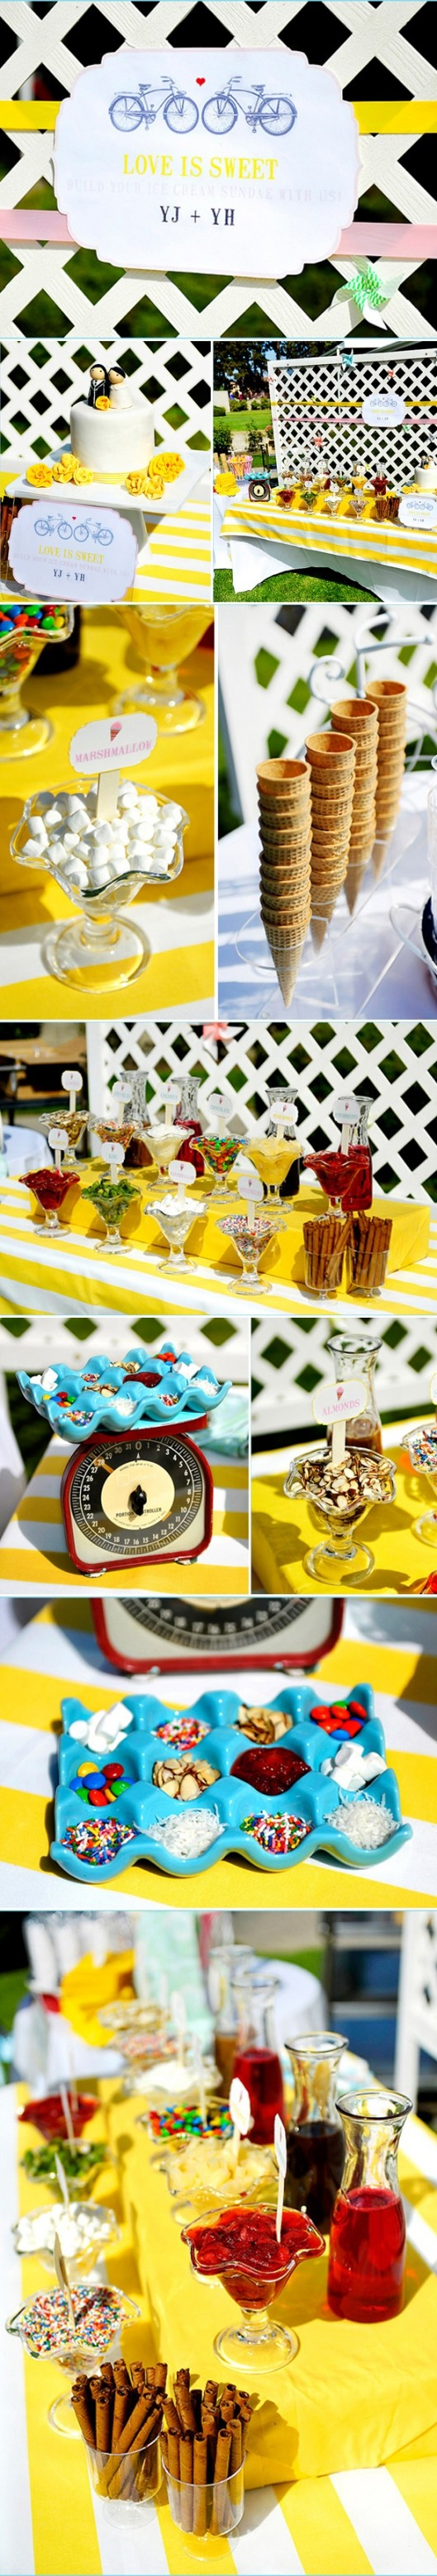 Summer Party Ideas Ice Cream Party Theme National Ice Cream Day National Ice Cream Month Ice Cream Party Theme Ice Cream Party Icecream Bar